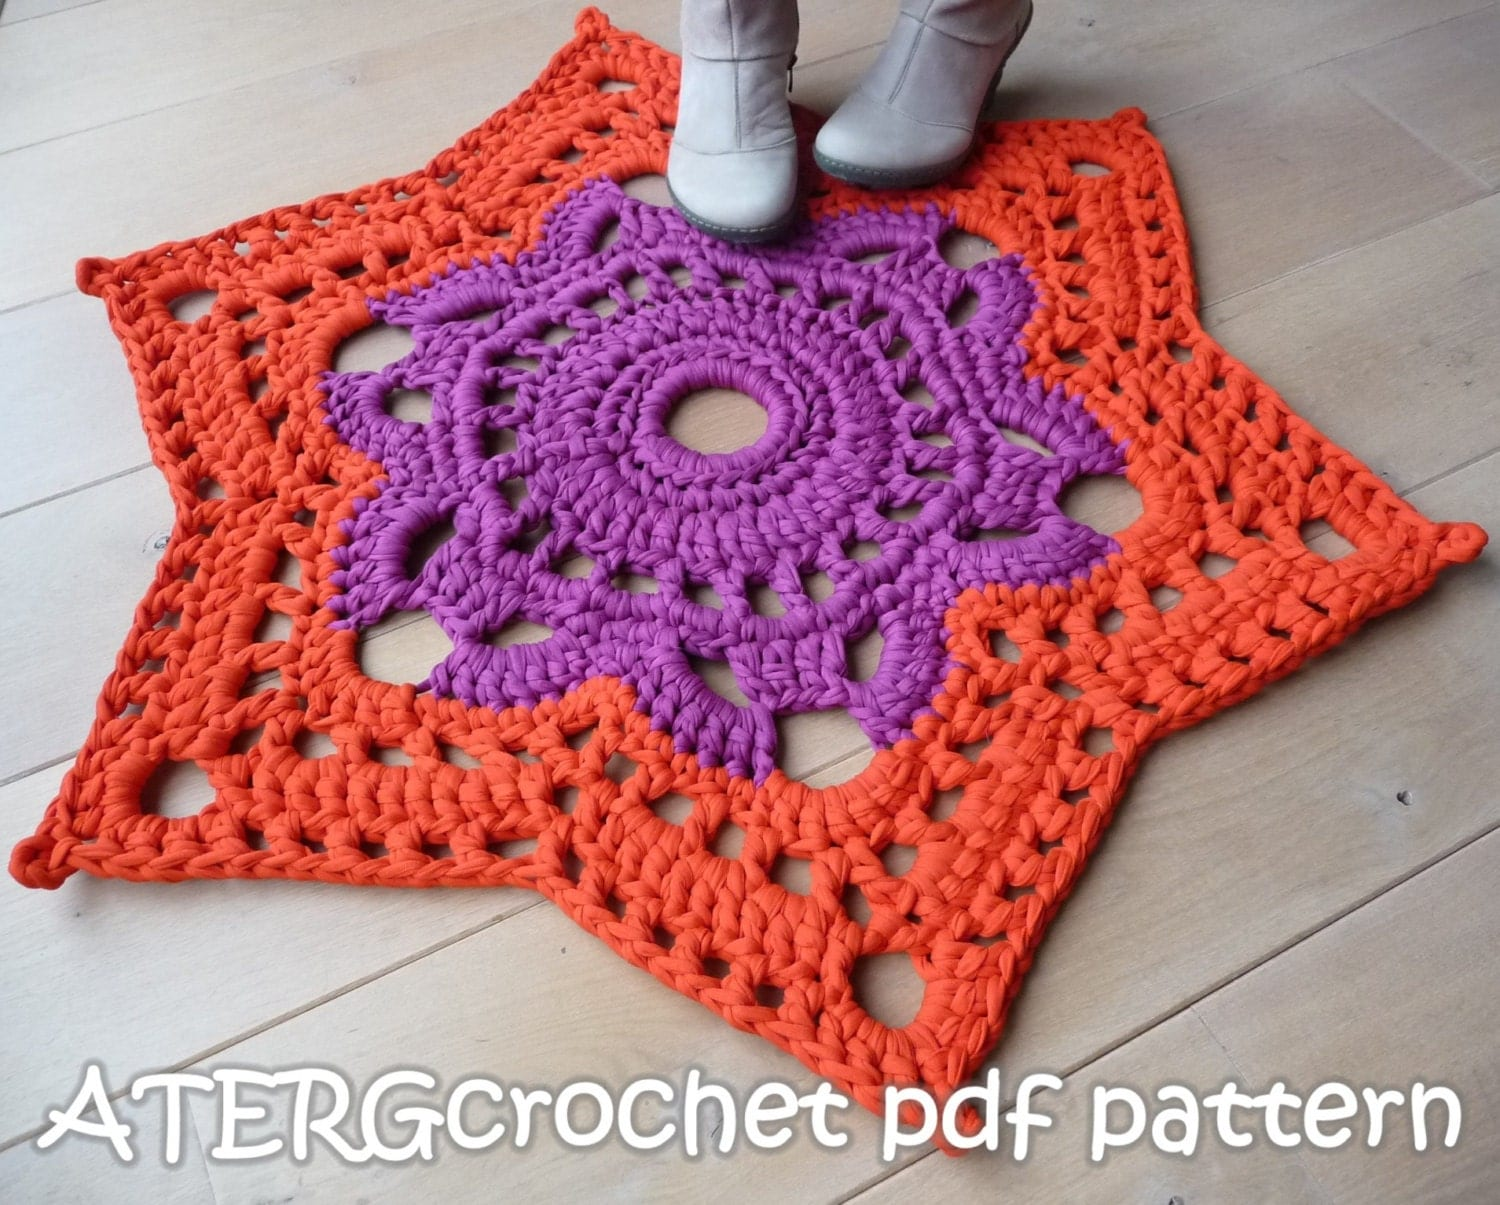 Crochet pattern STAR RUG by ATERGcrochet XL by ATERGcrochet